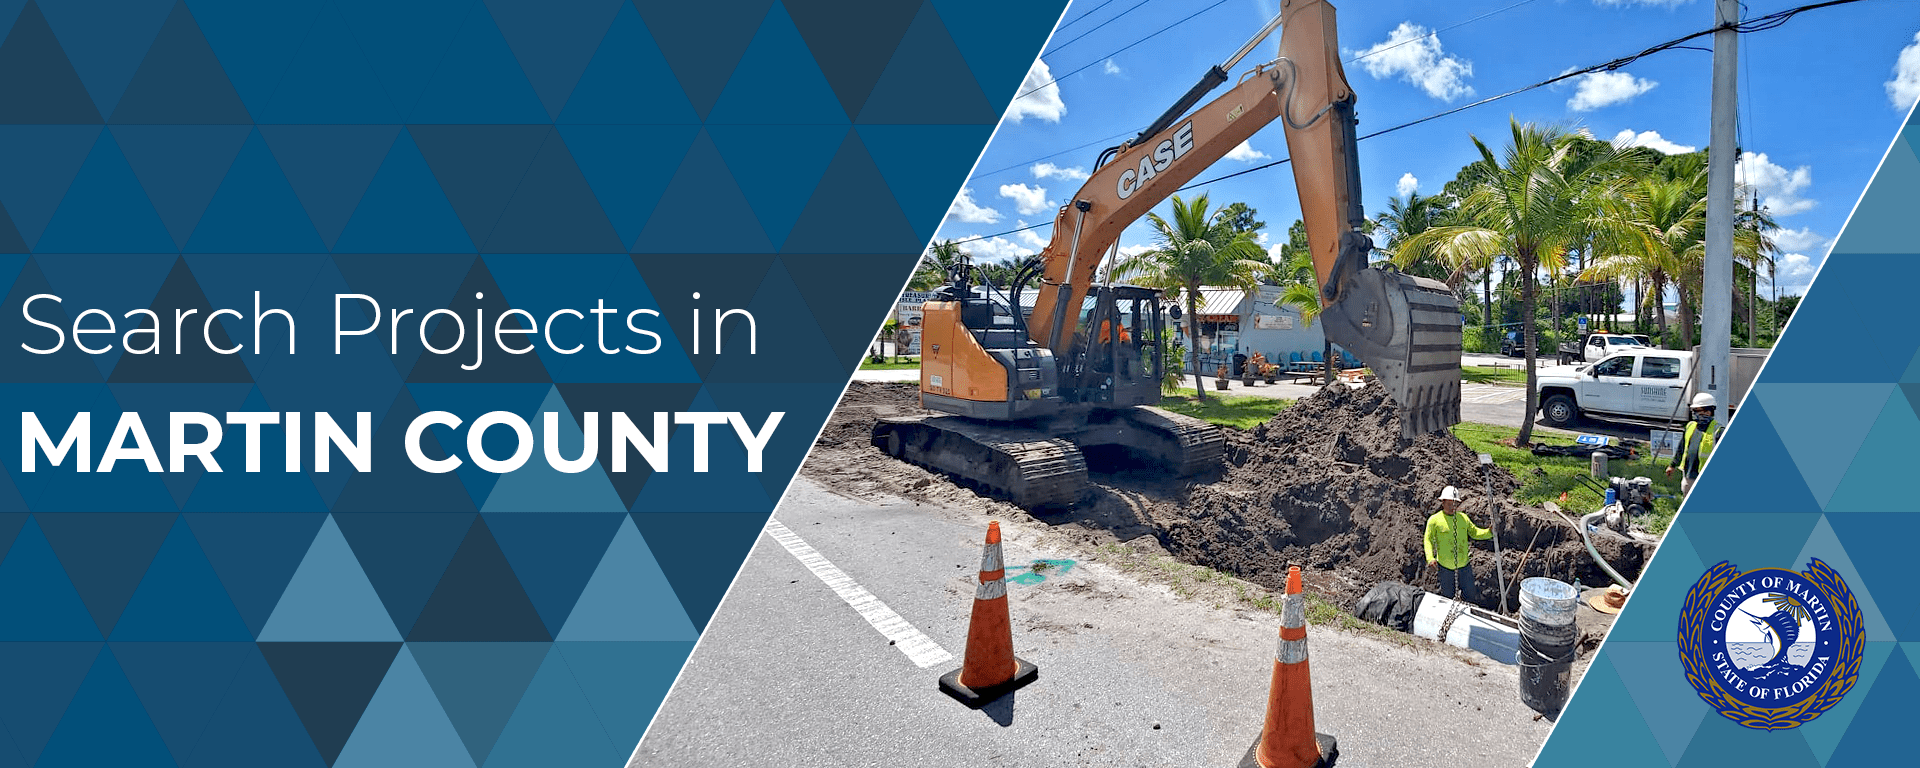 Search Projects in Martin County